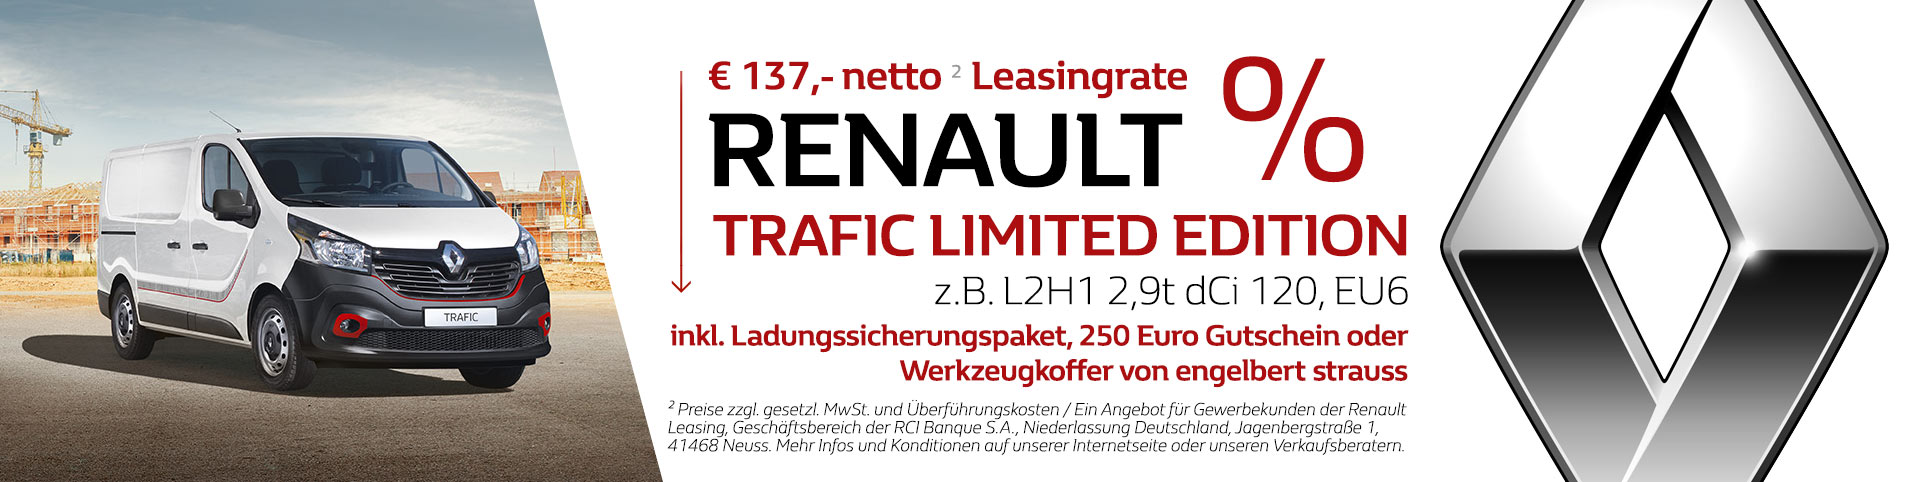 Renault Trafic Limited Edition Angebot